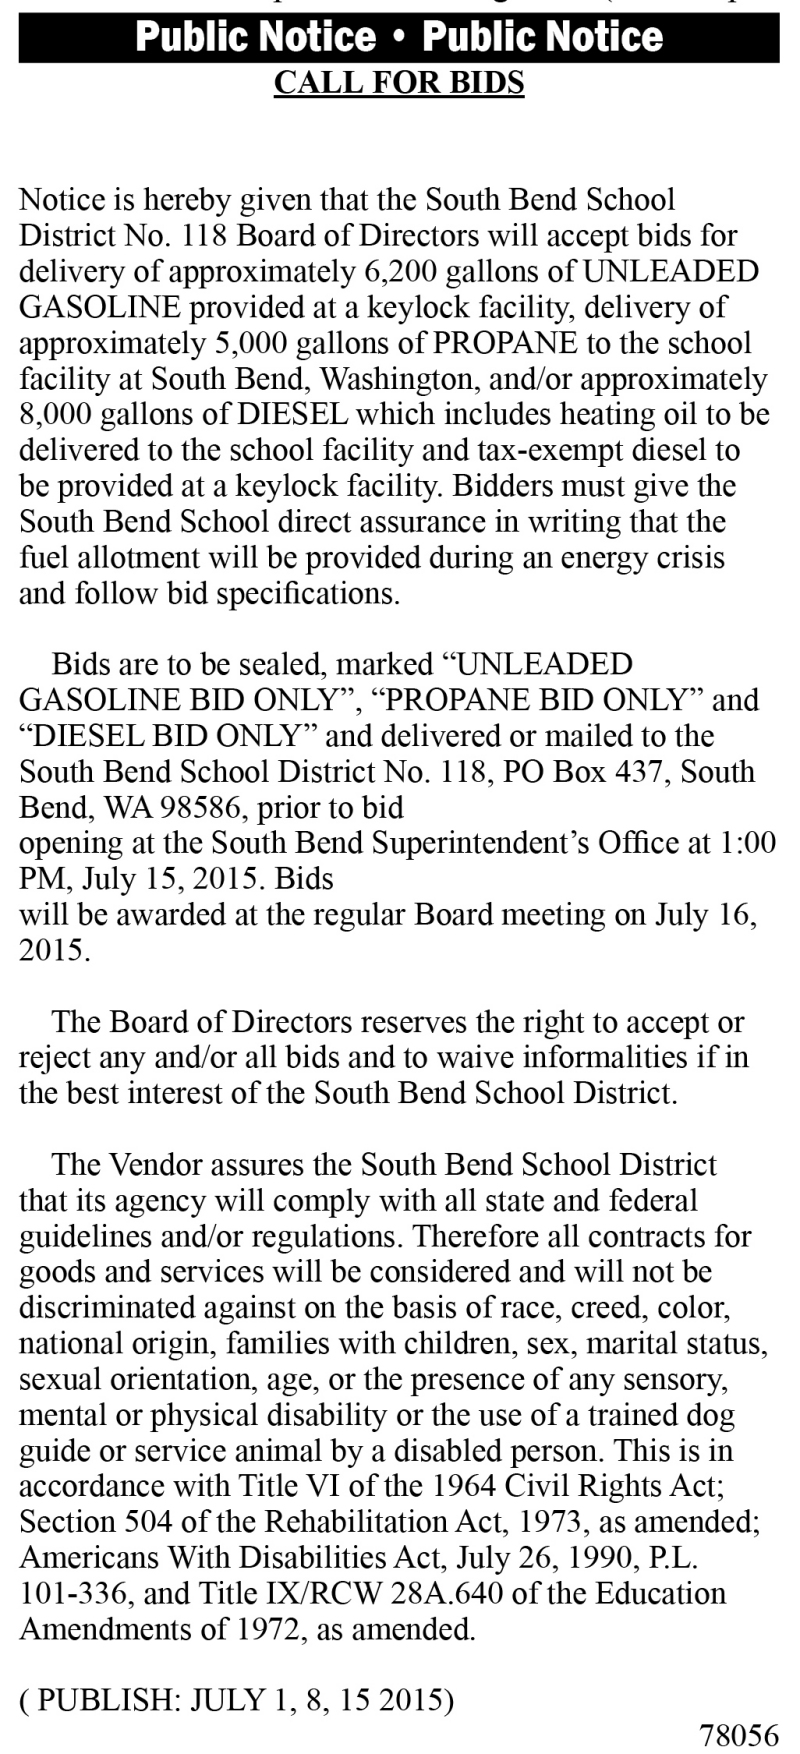 Legal 78056: CALL FOR BIDS